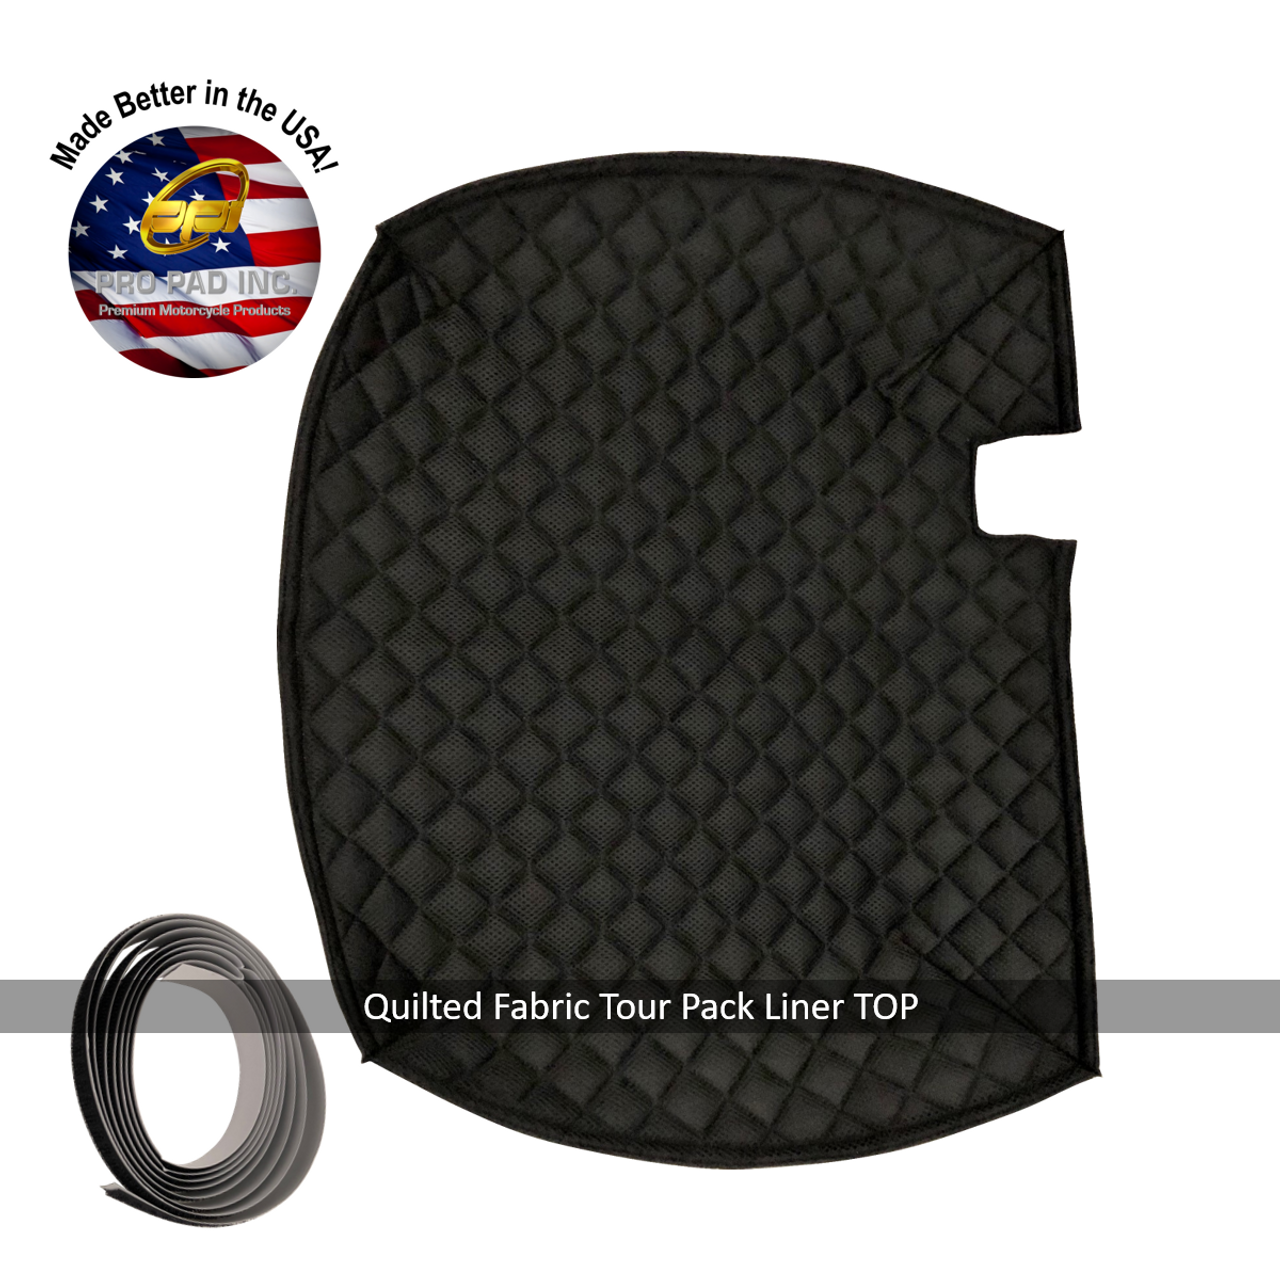 Quilted Fabric TOP Tour Pack Liner with velcro